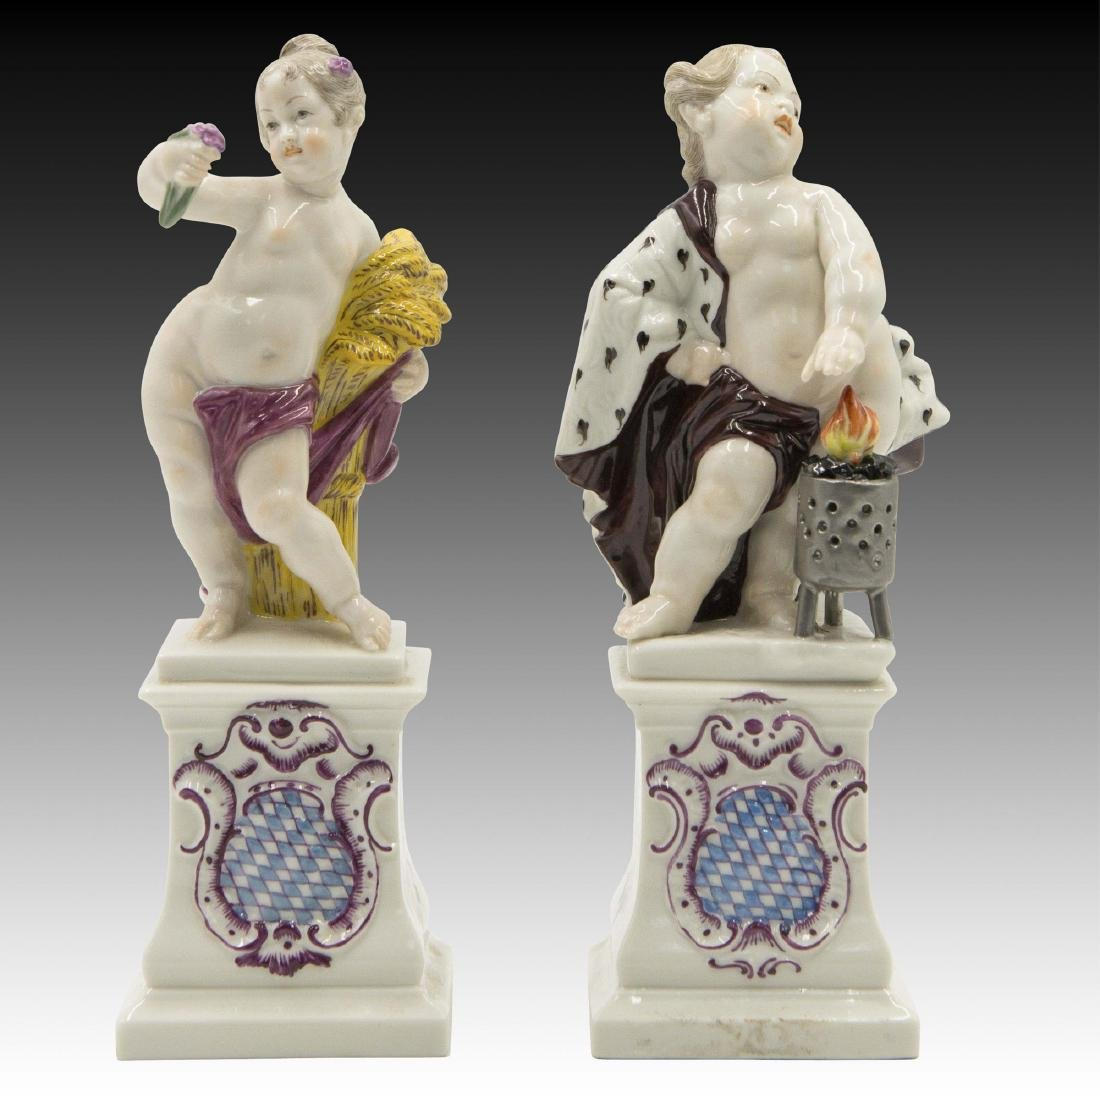 Pair of Nymphenburg German Porcelain  Cherub Figurines